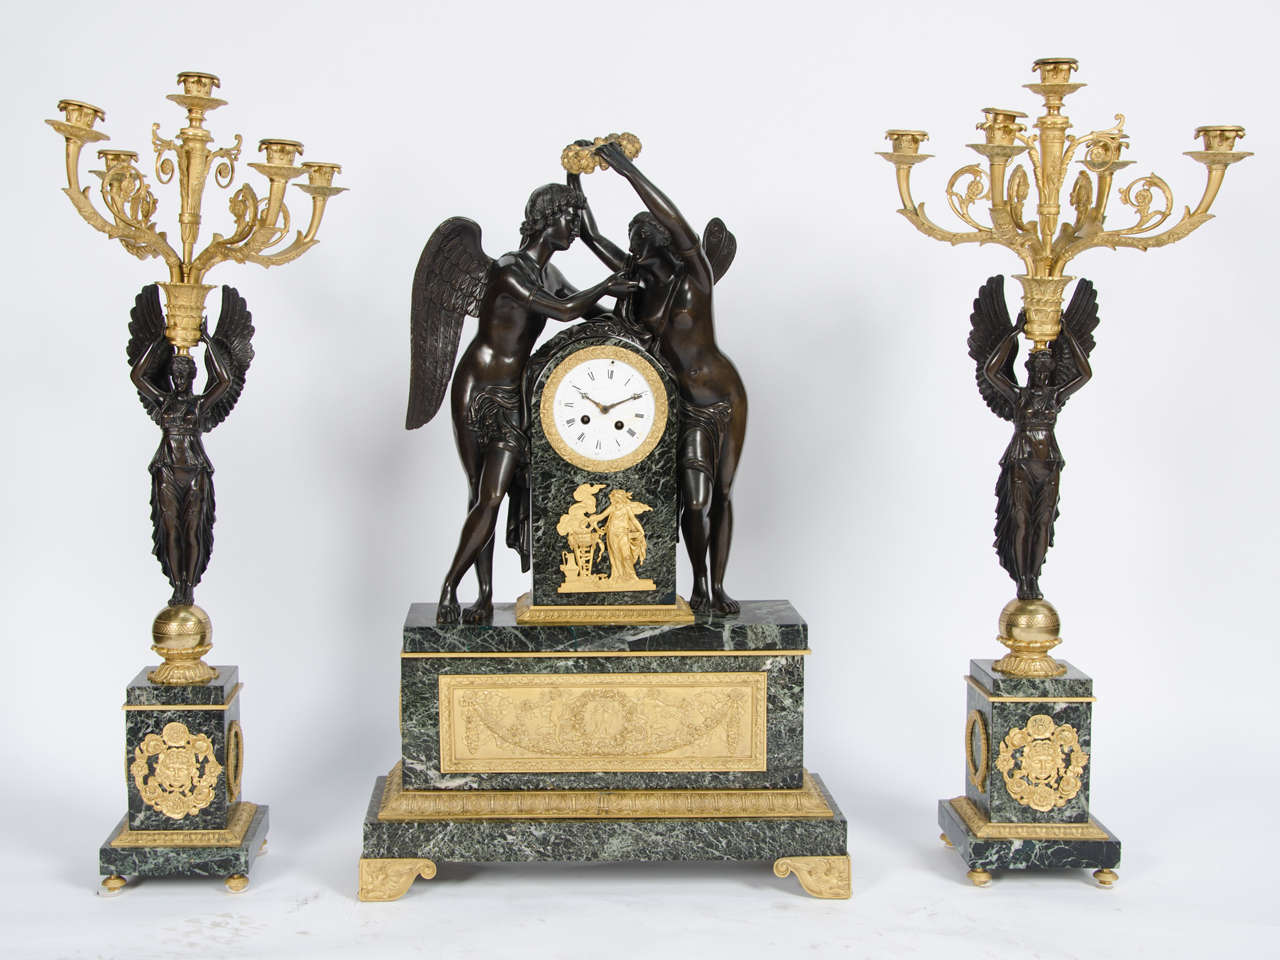 A very impressive French gilded ormolu, bronze and marble clock garniture in the Empire style, having a pair of five-branch candelabra to either side of the clock. The clock having classical winged lovers, ormolu decoration set on green marble and